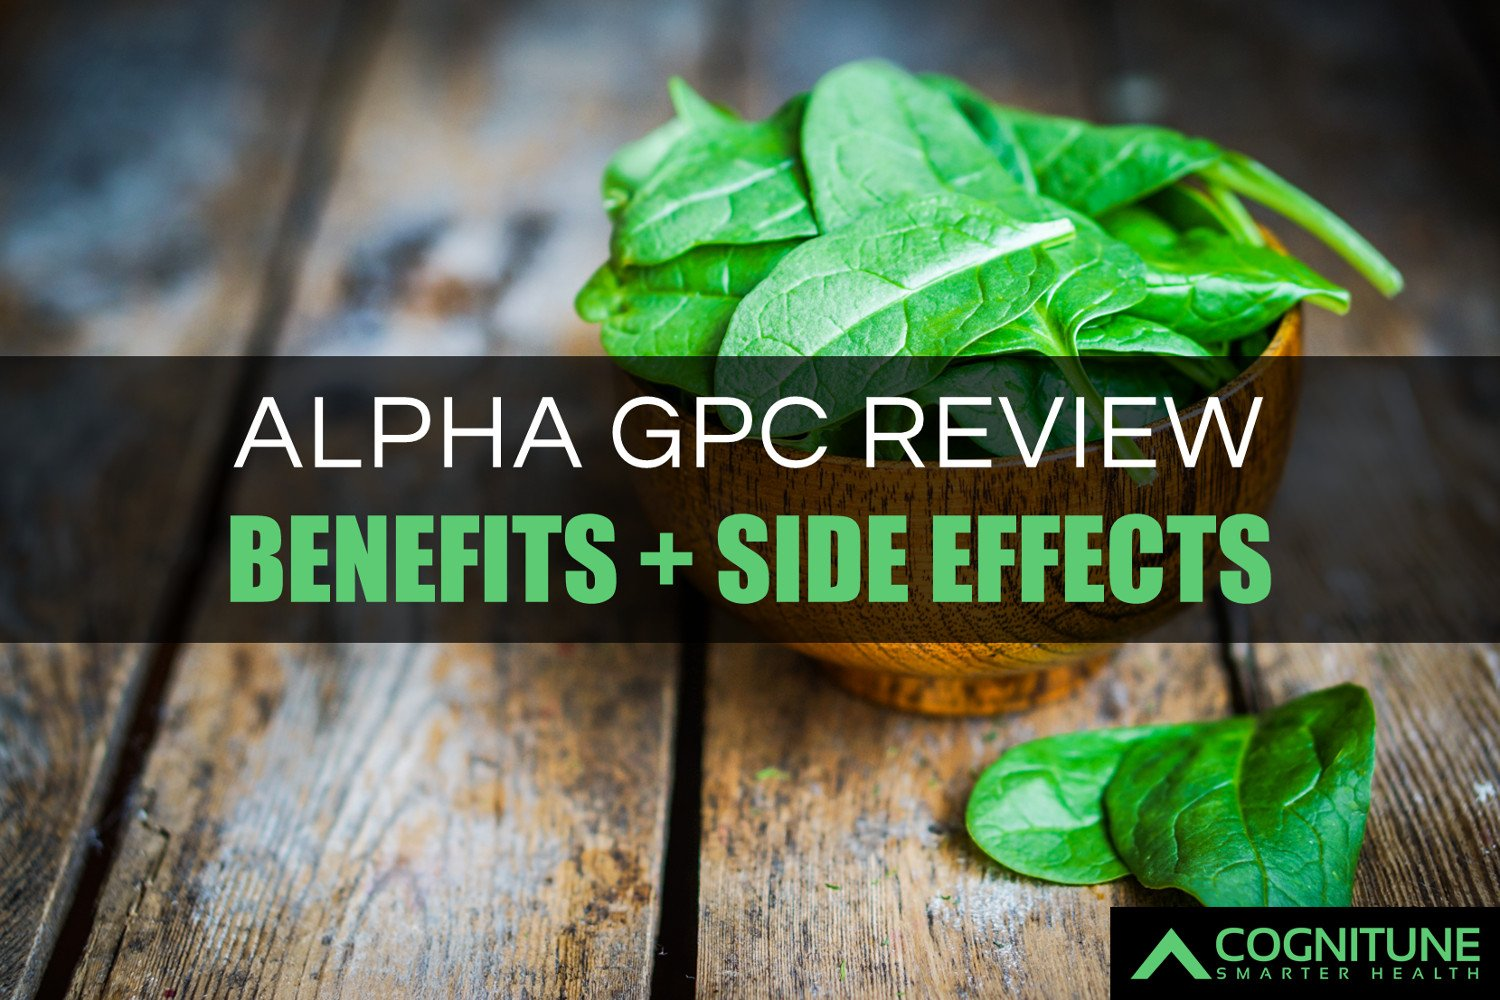 Alpha gpc effects